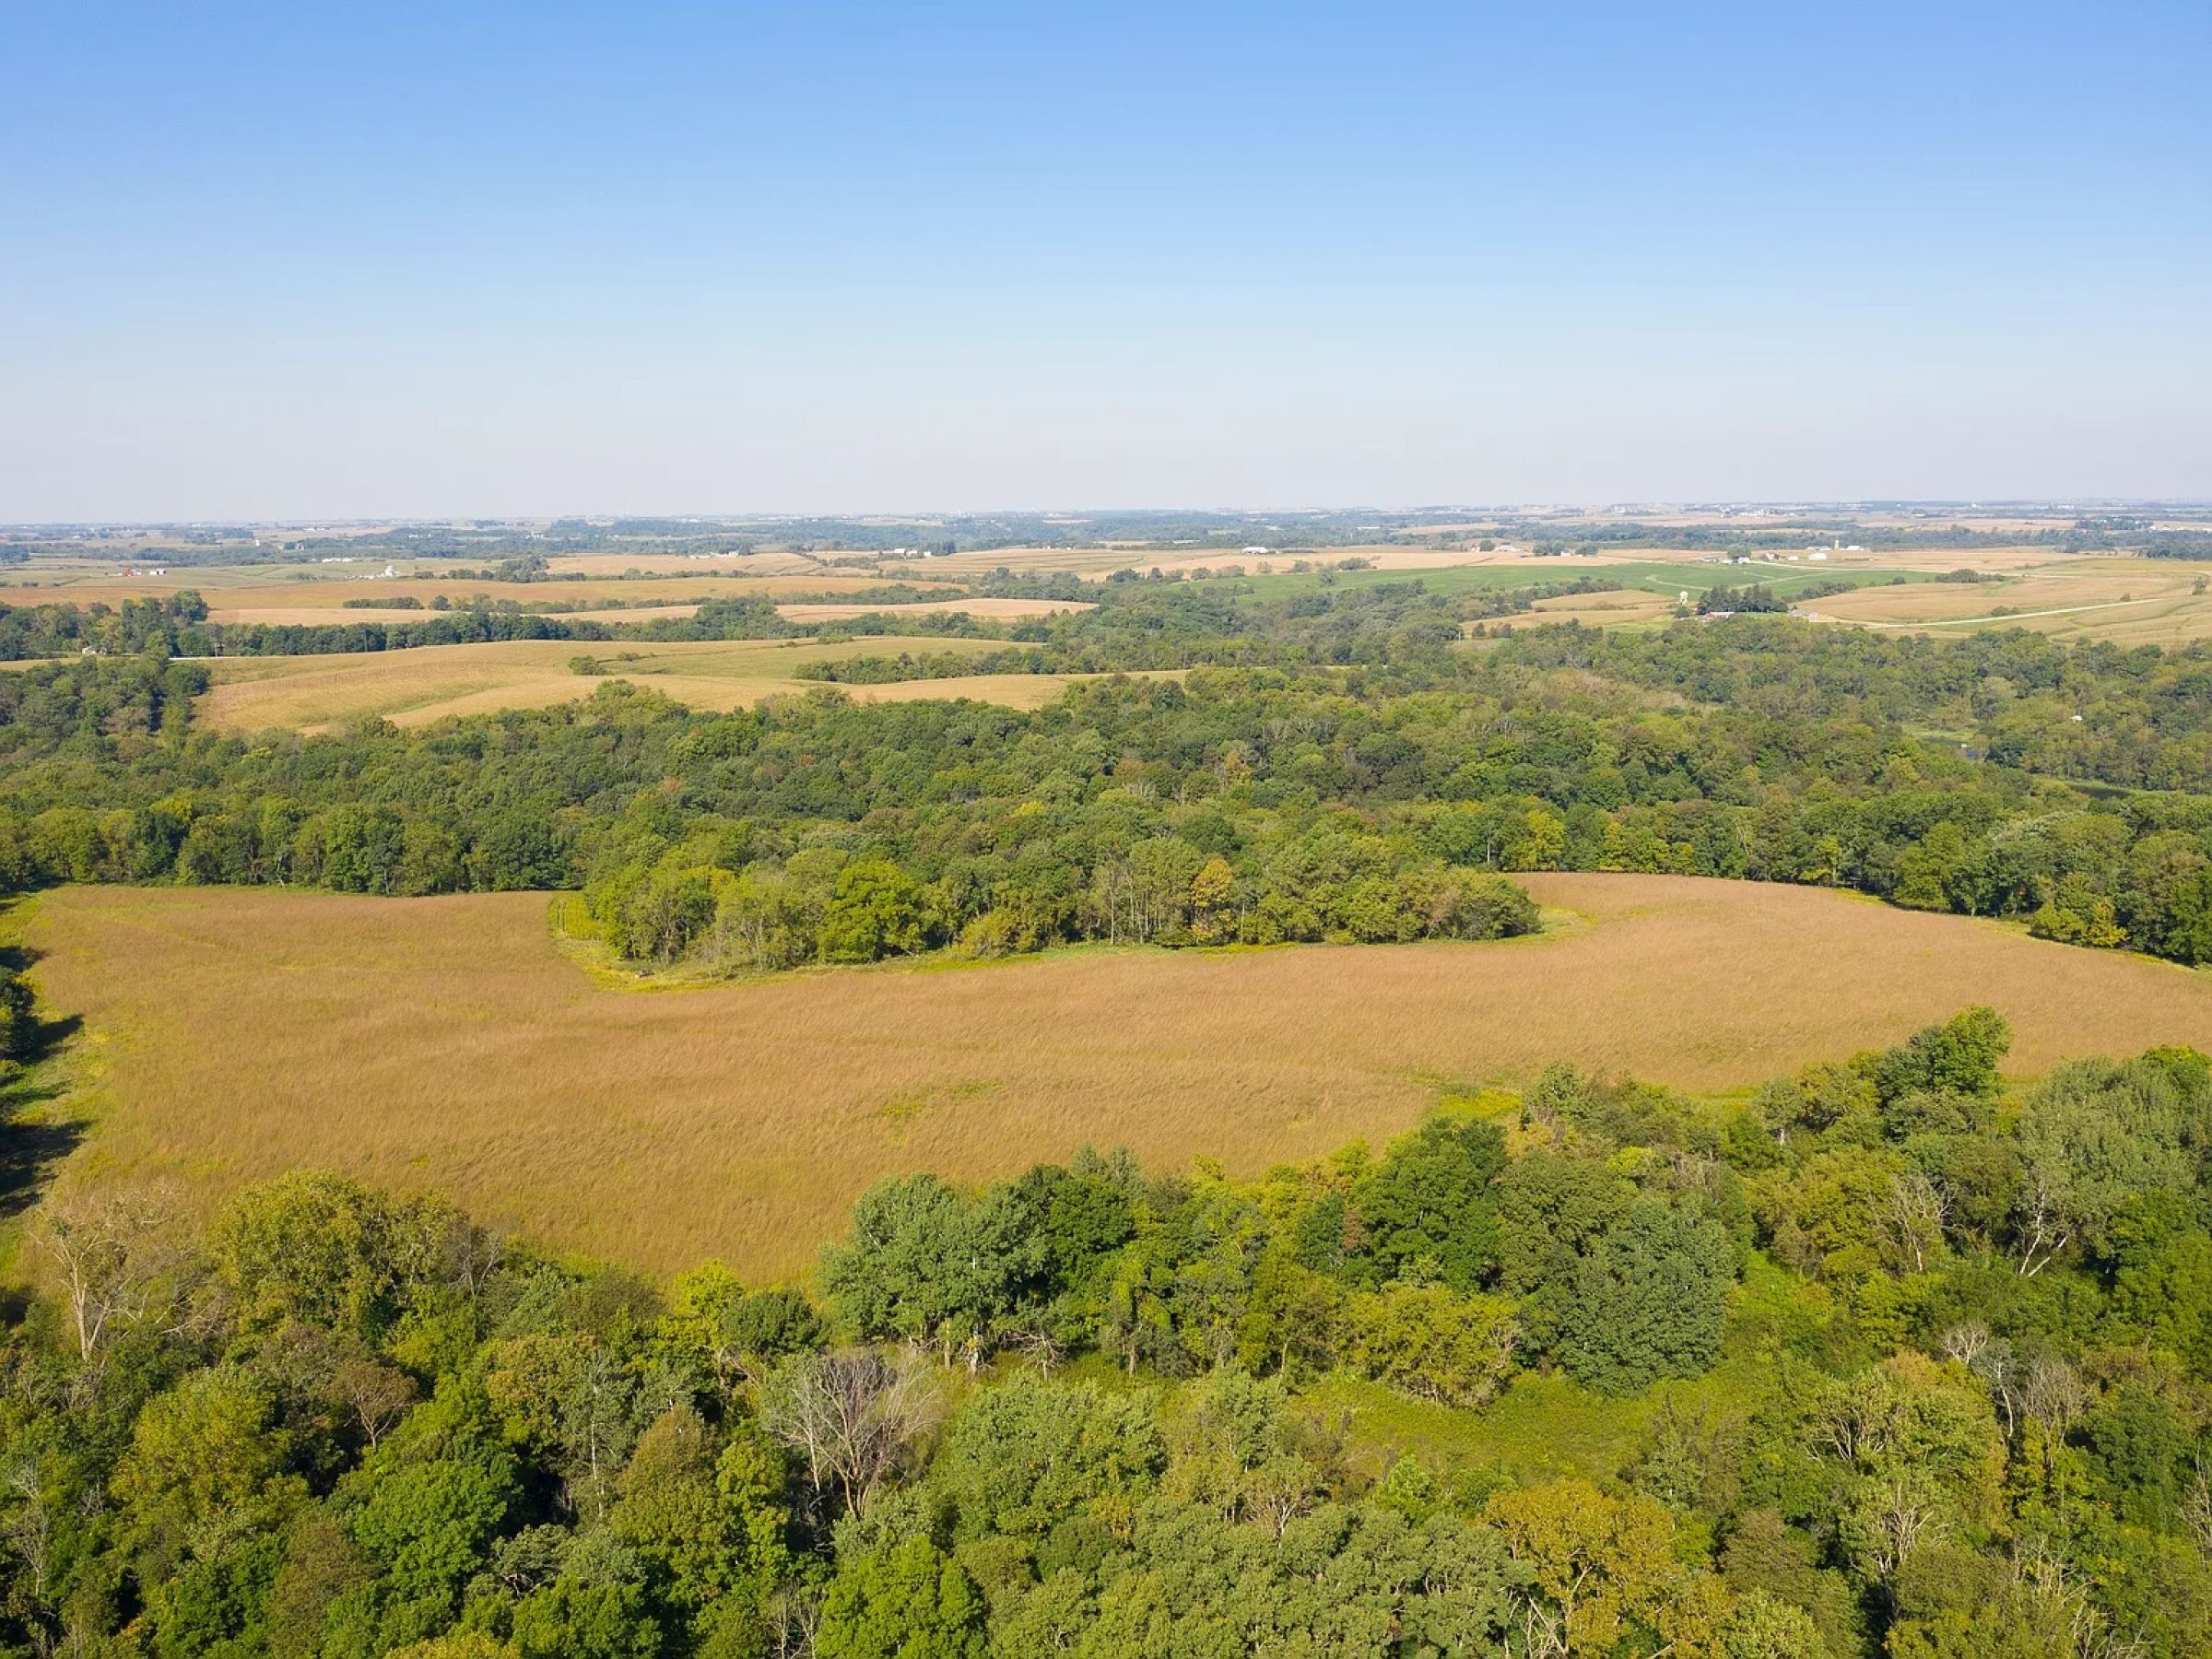 land-fayette-county-iowa-495-acres-listing-number-14992-12-2020-05-08-210245.jpg